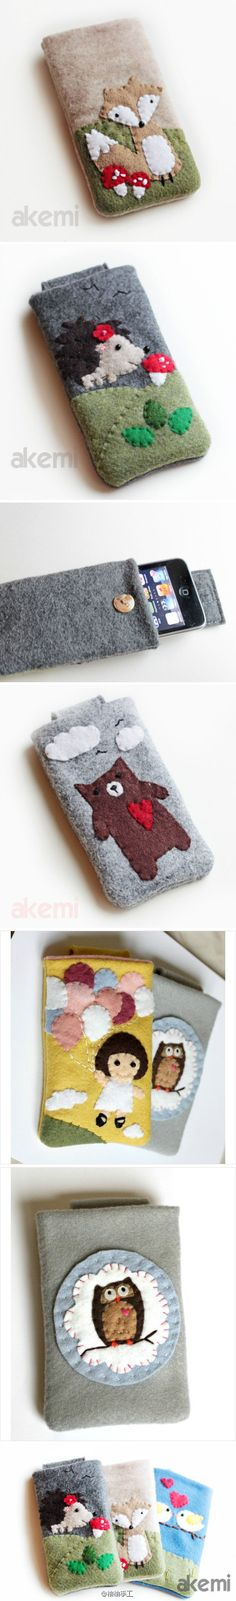 Cute felt patch iphone sets